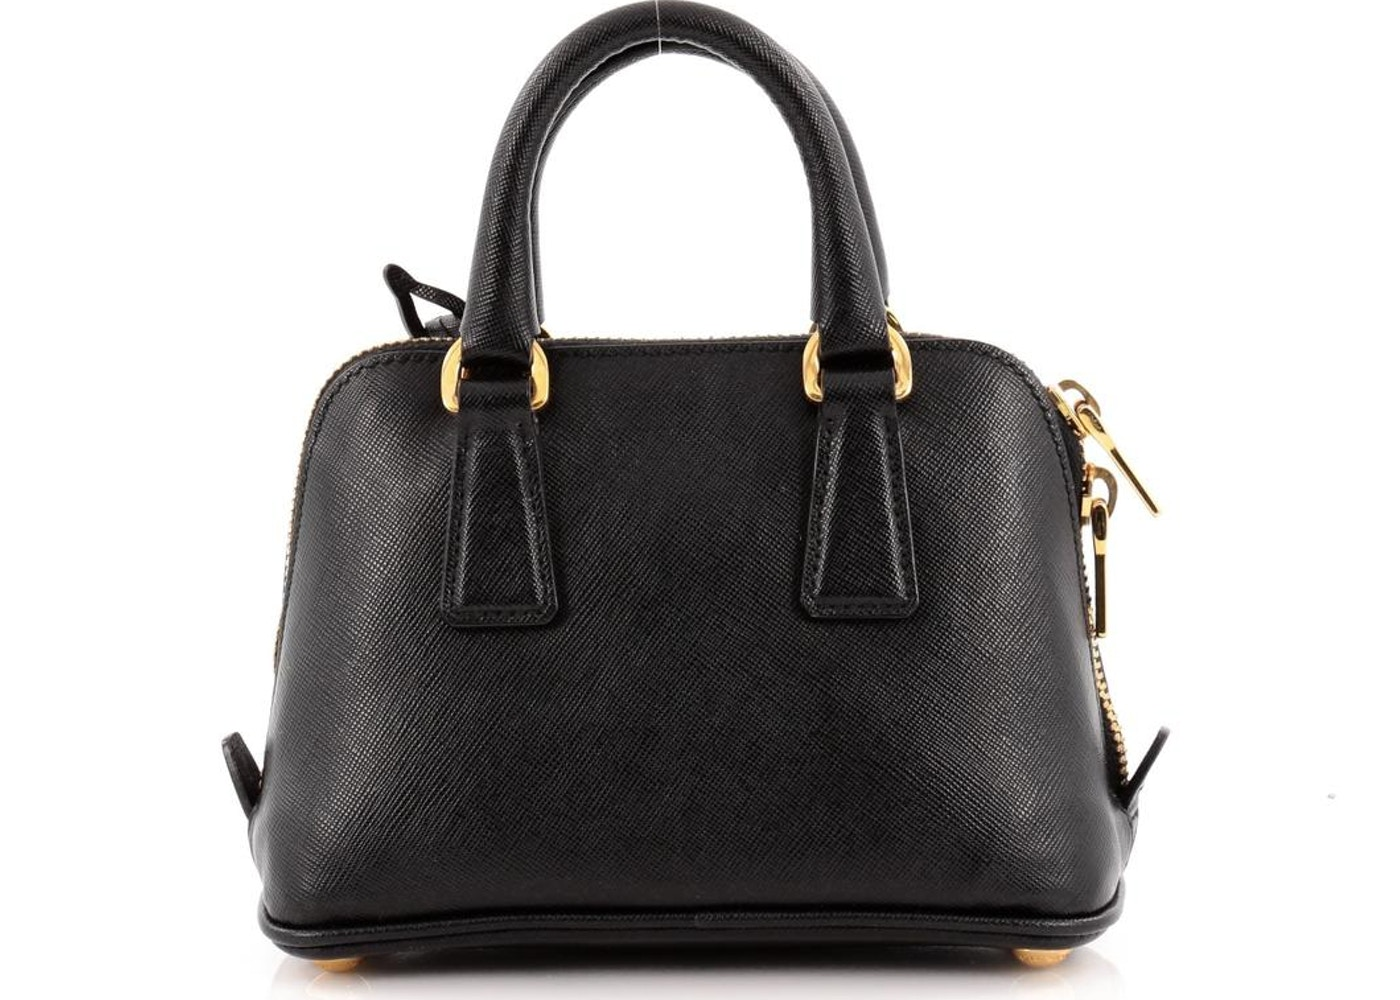 e95ce165d7e4 Sell. or Ask. View All Bids. Prada Promenade Handle Bag Saffiano Mini  Classic Nero Black